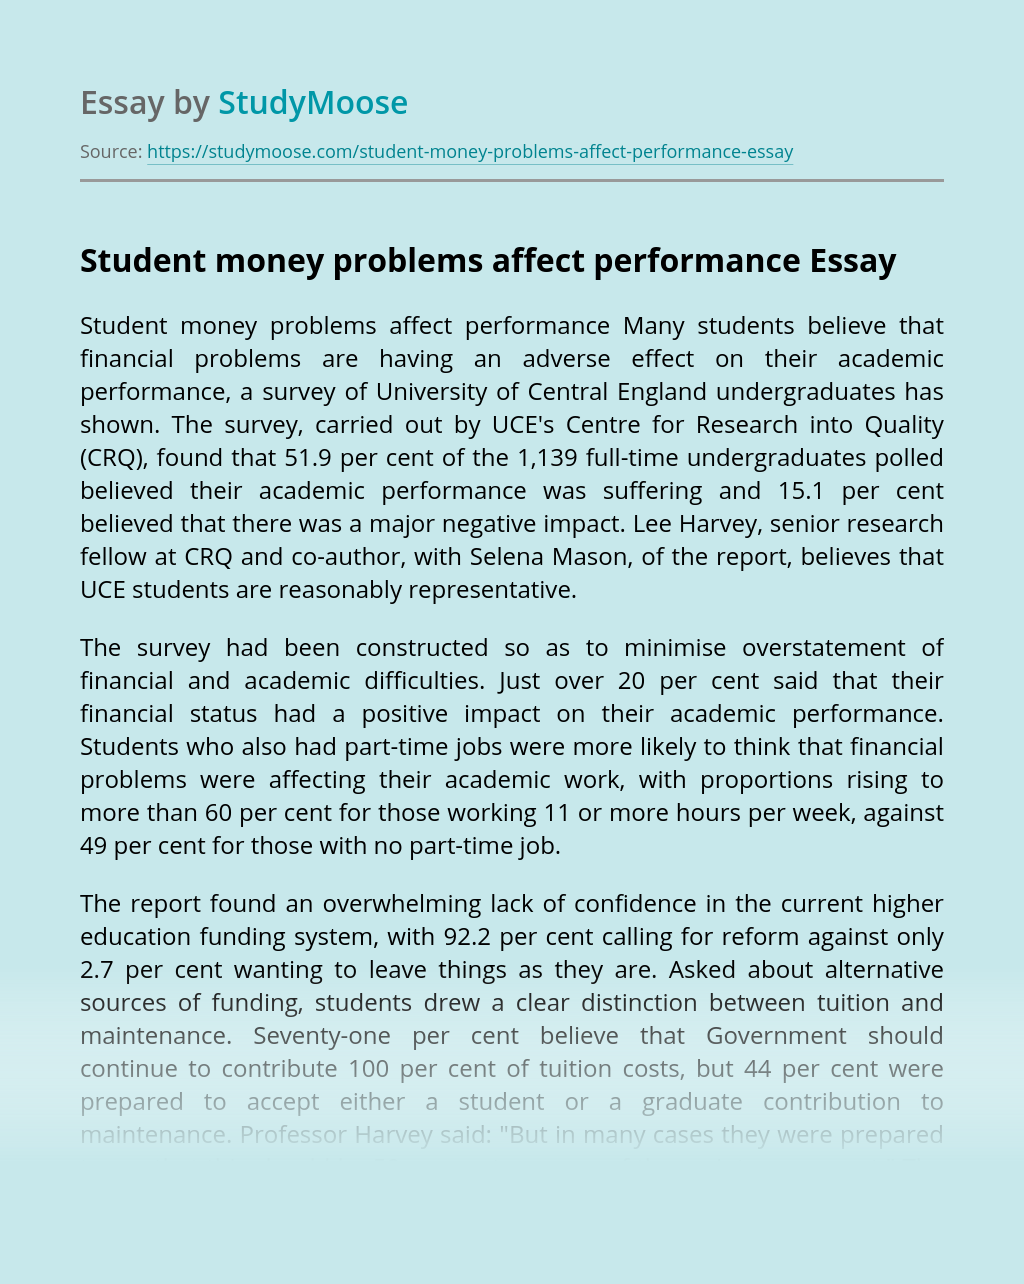 Student money problems affect performance